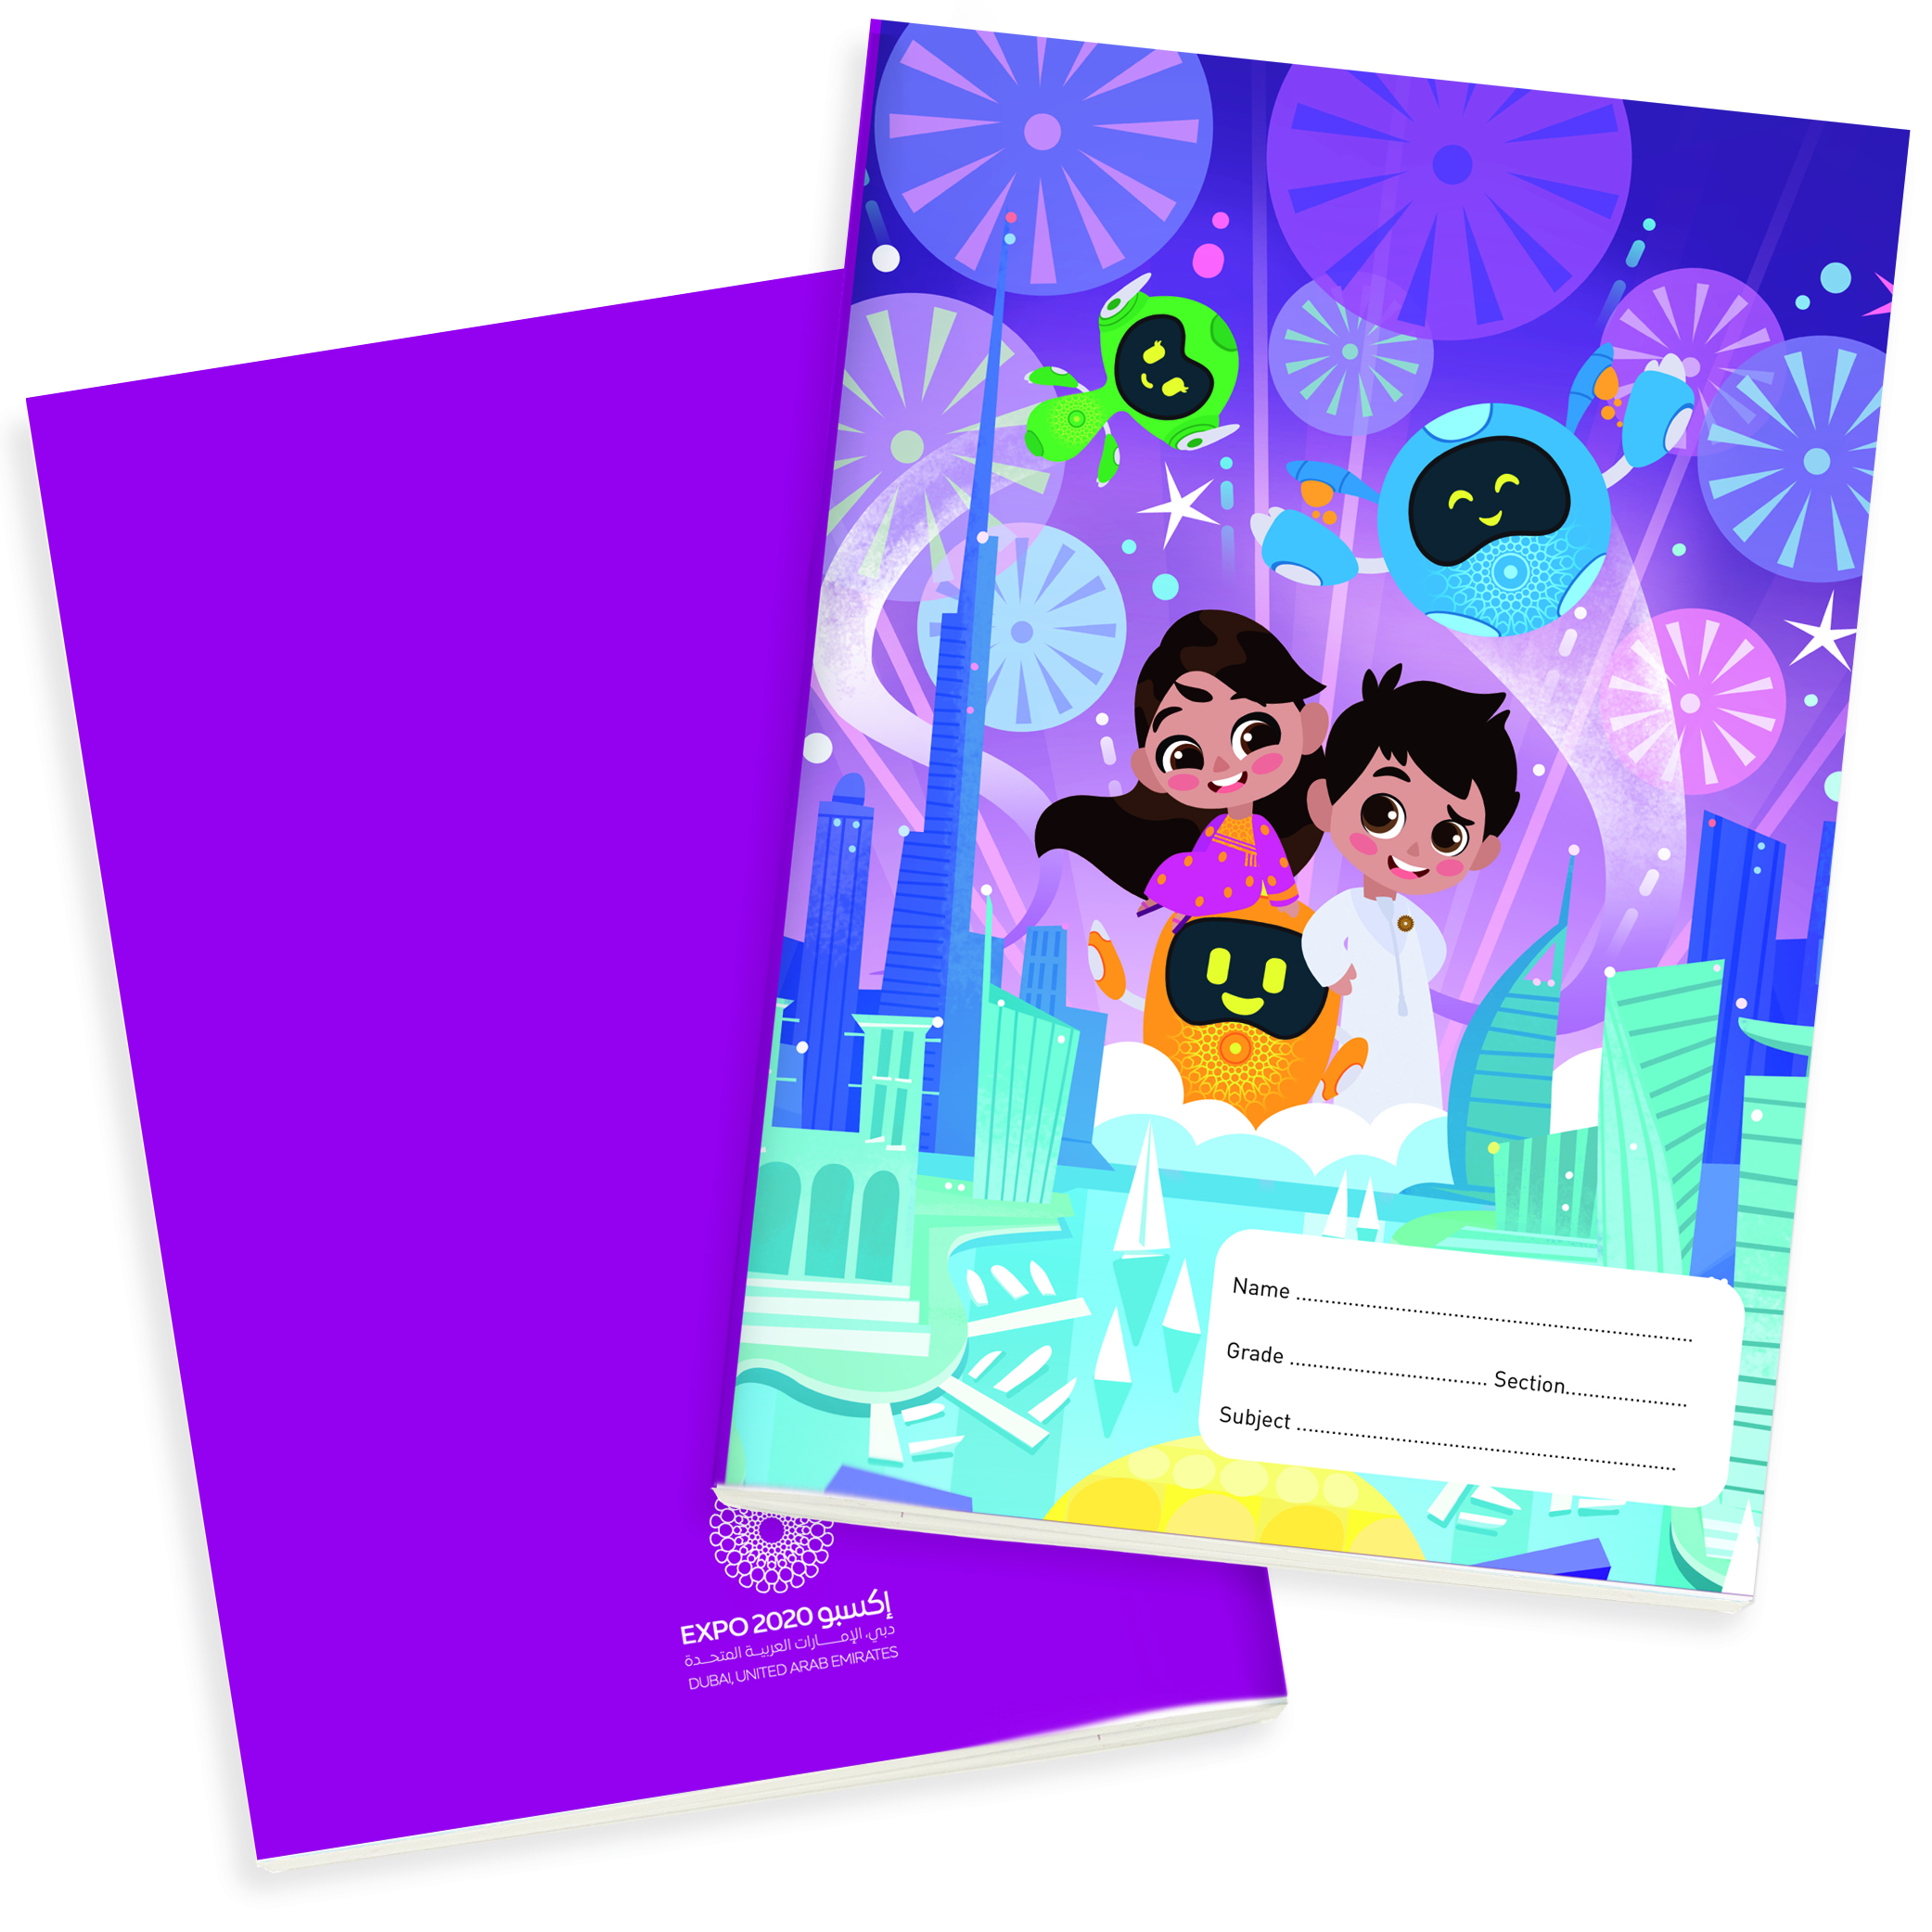 Expo 2020 Dubai Mascots On a Mission A4 Exercise Books Pack of 4 - 160 Pages